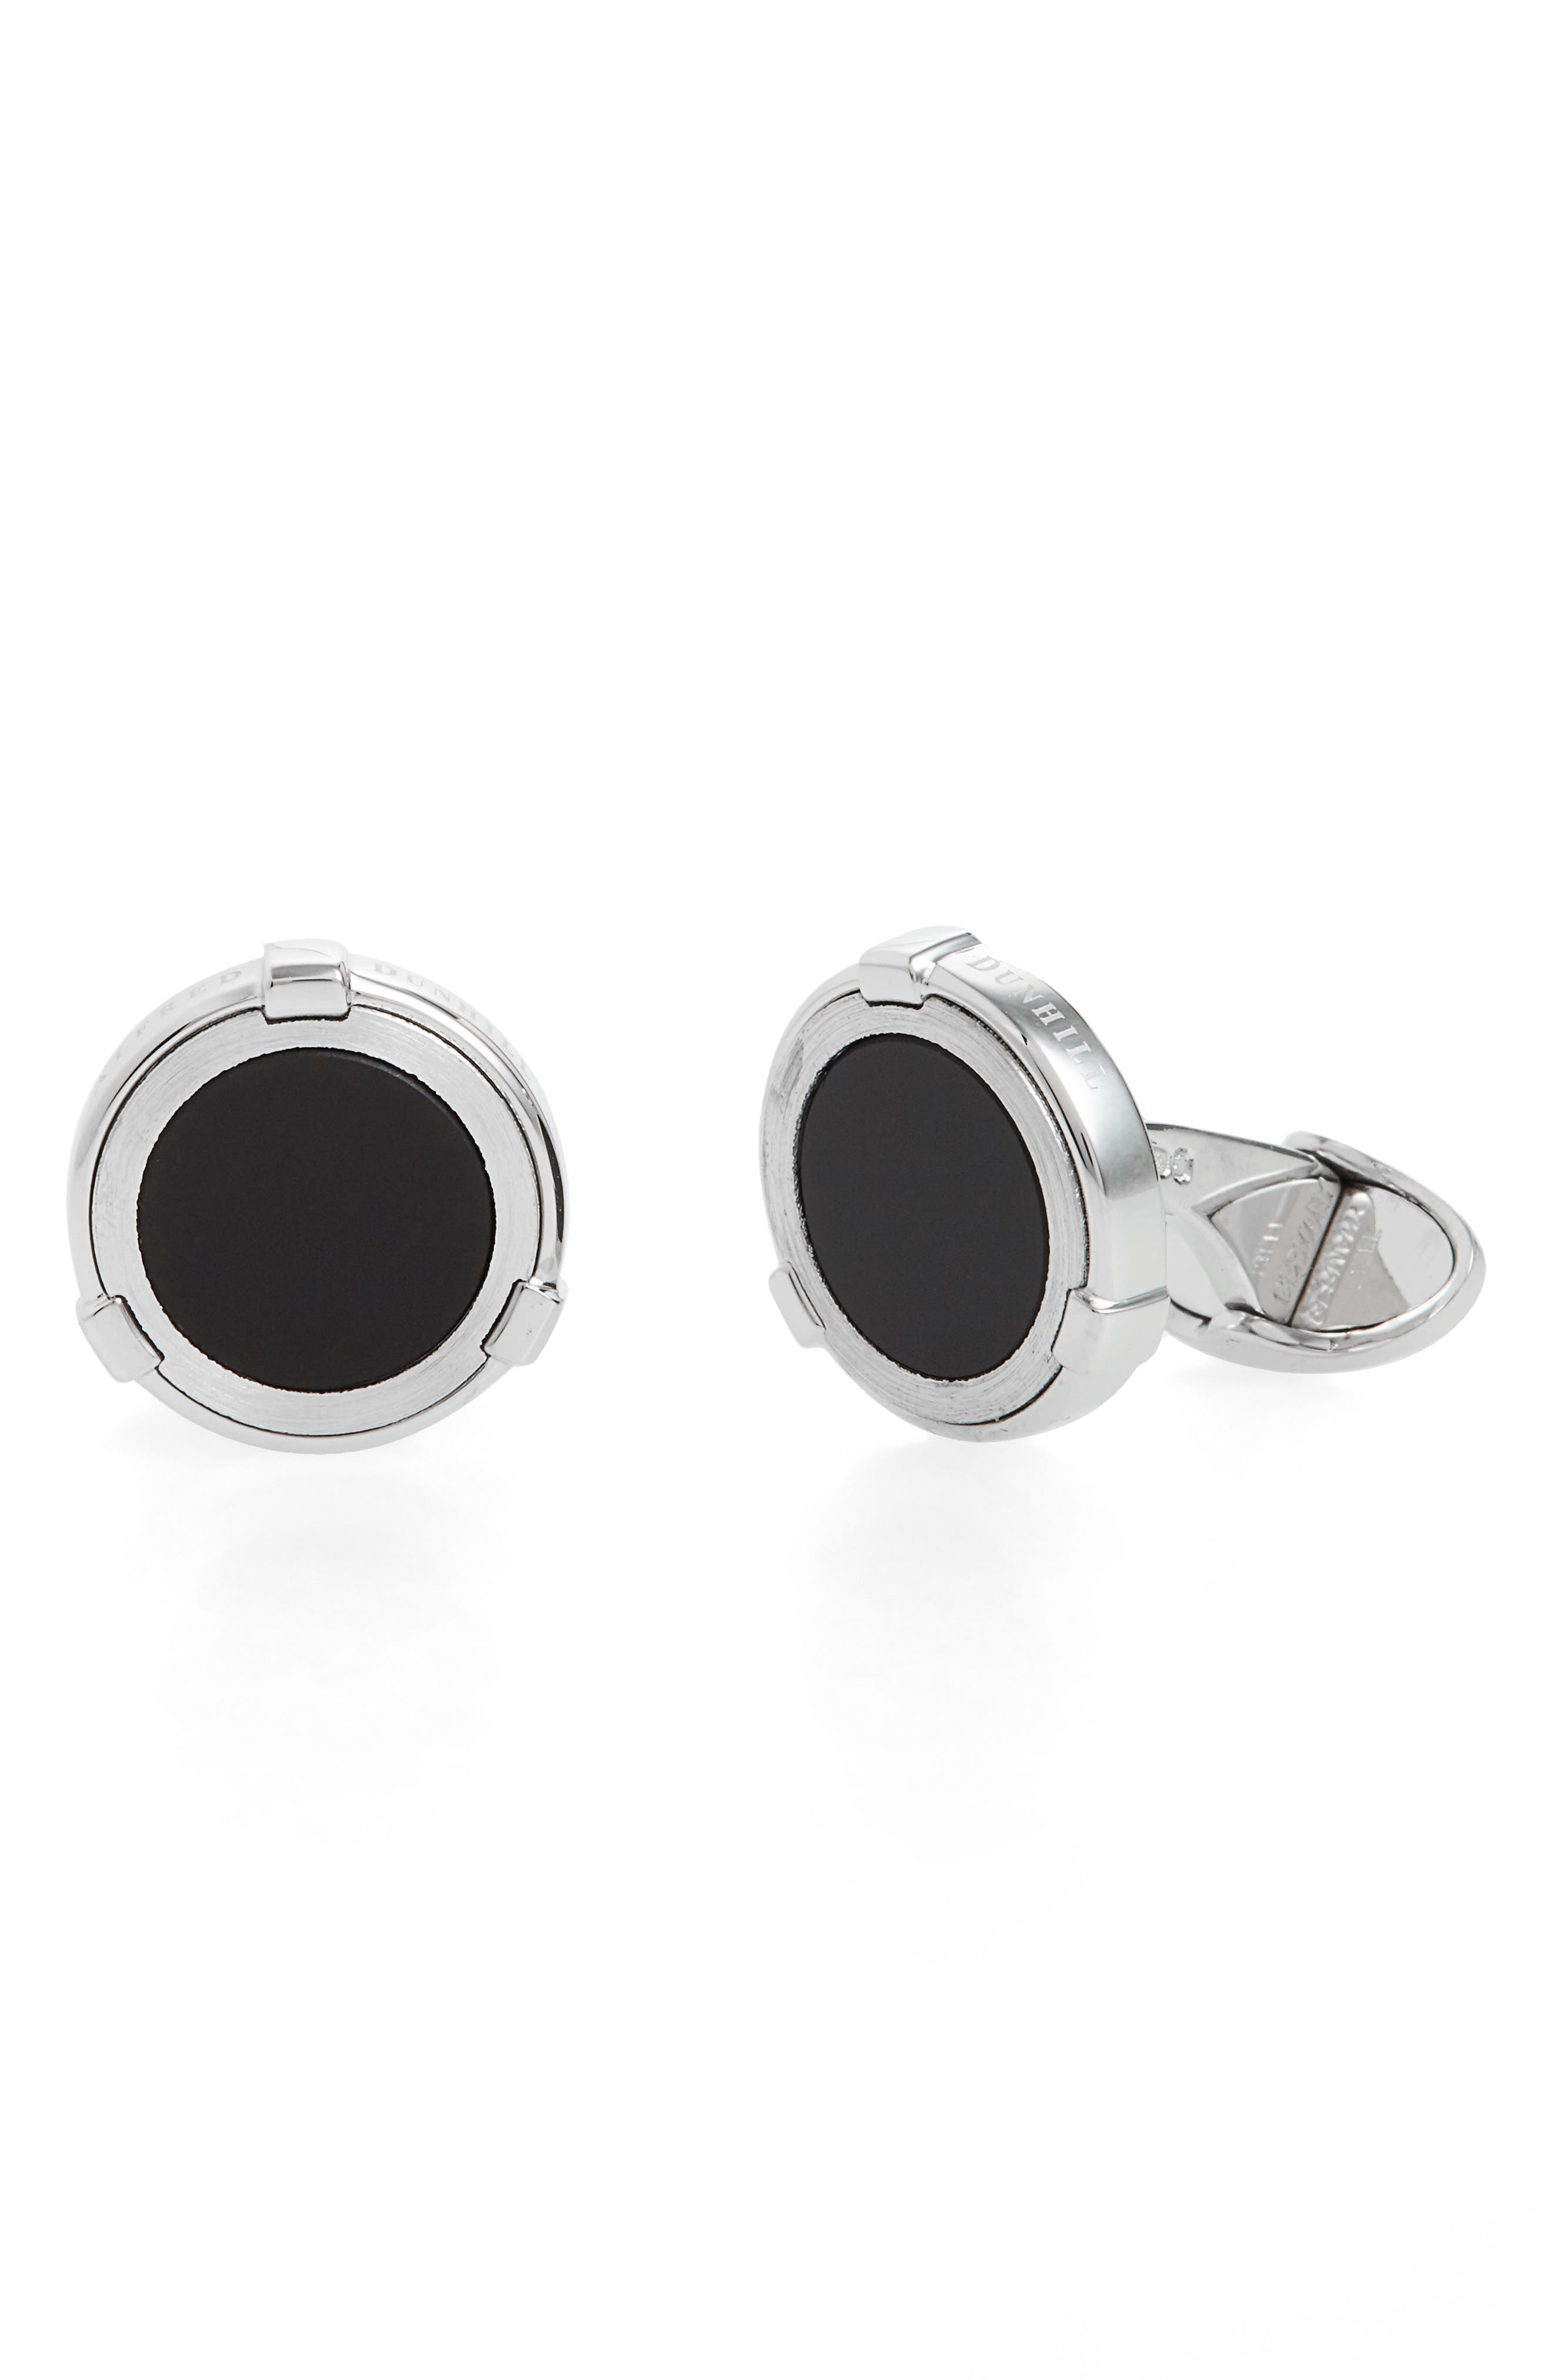 Main Image - Dunhill Latch Stone Cuff Links